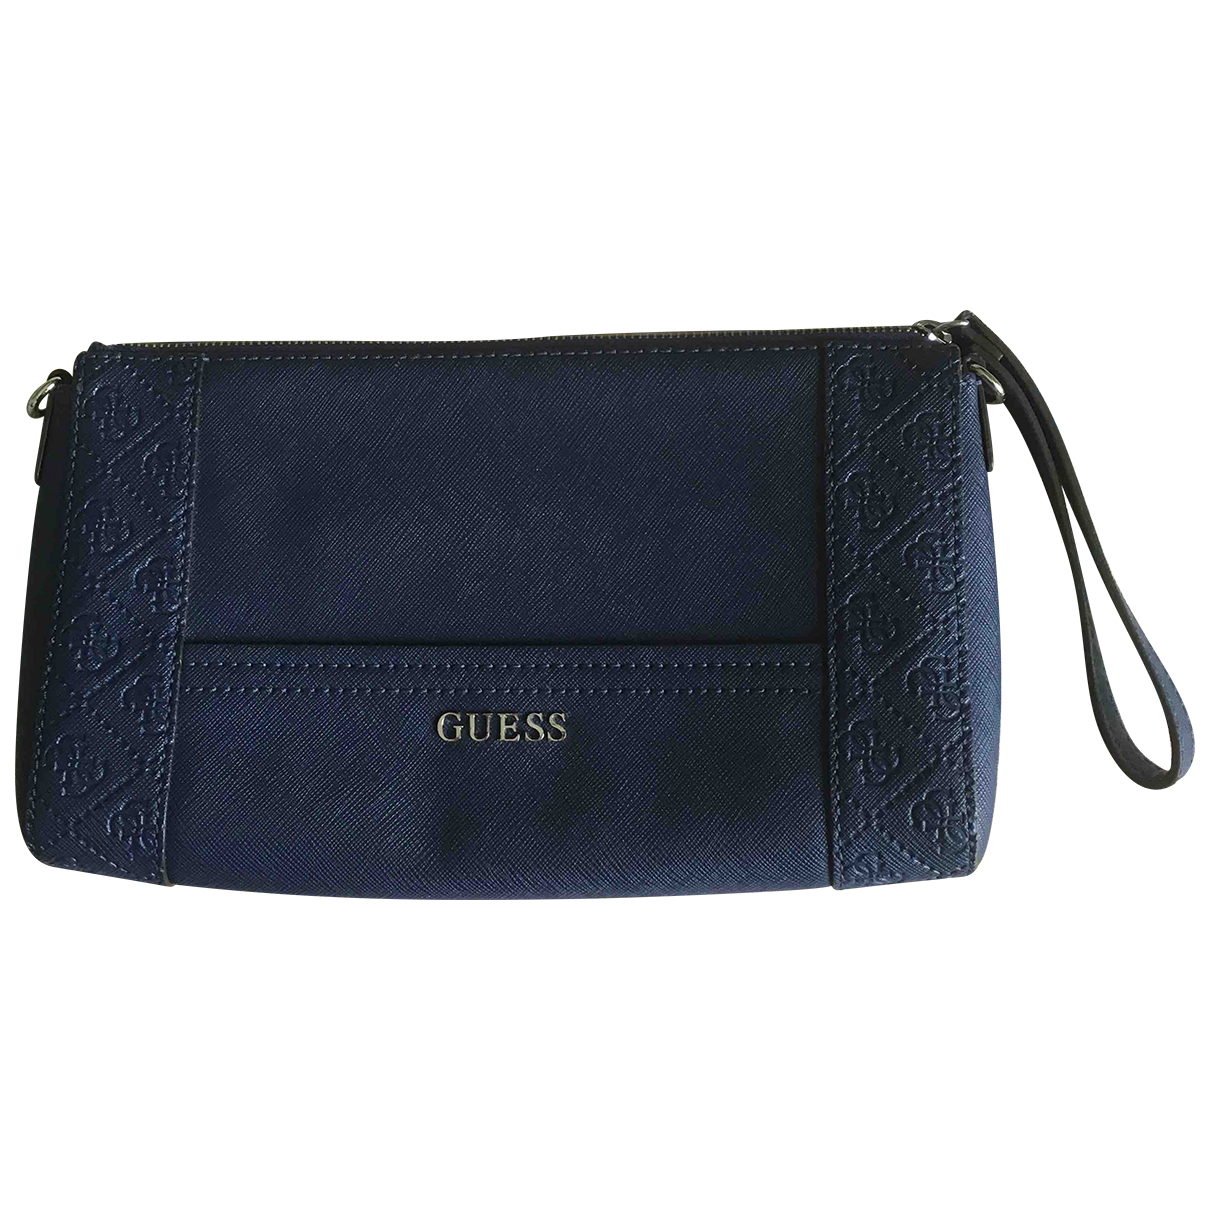 Guess \N Clutch in  Blau Leder